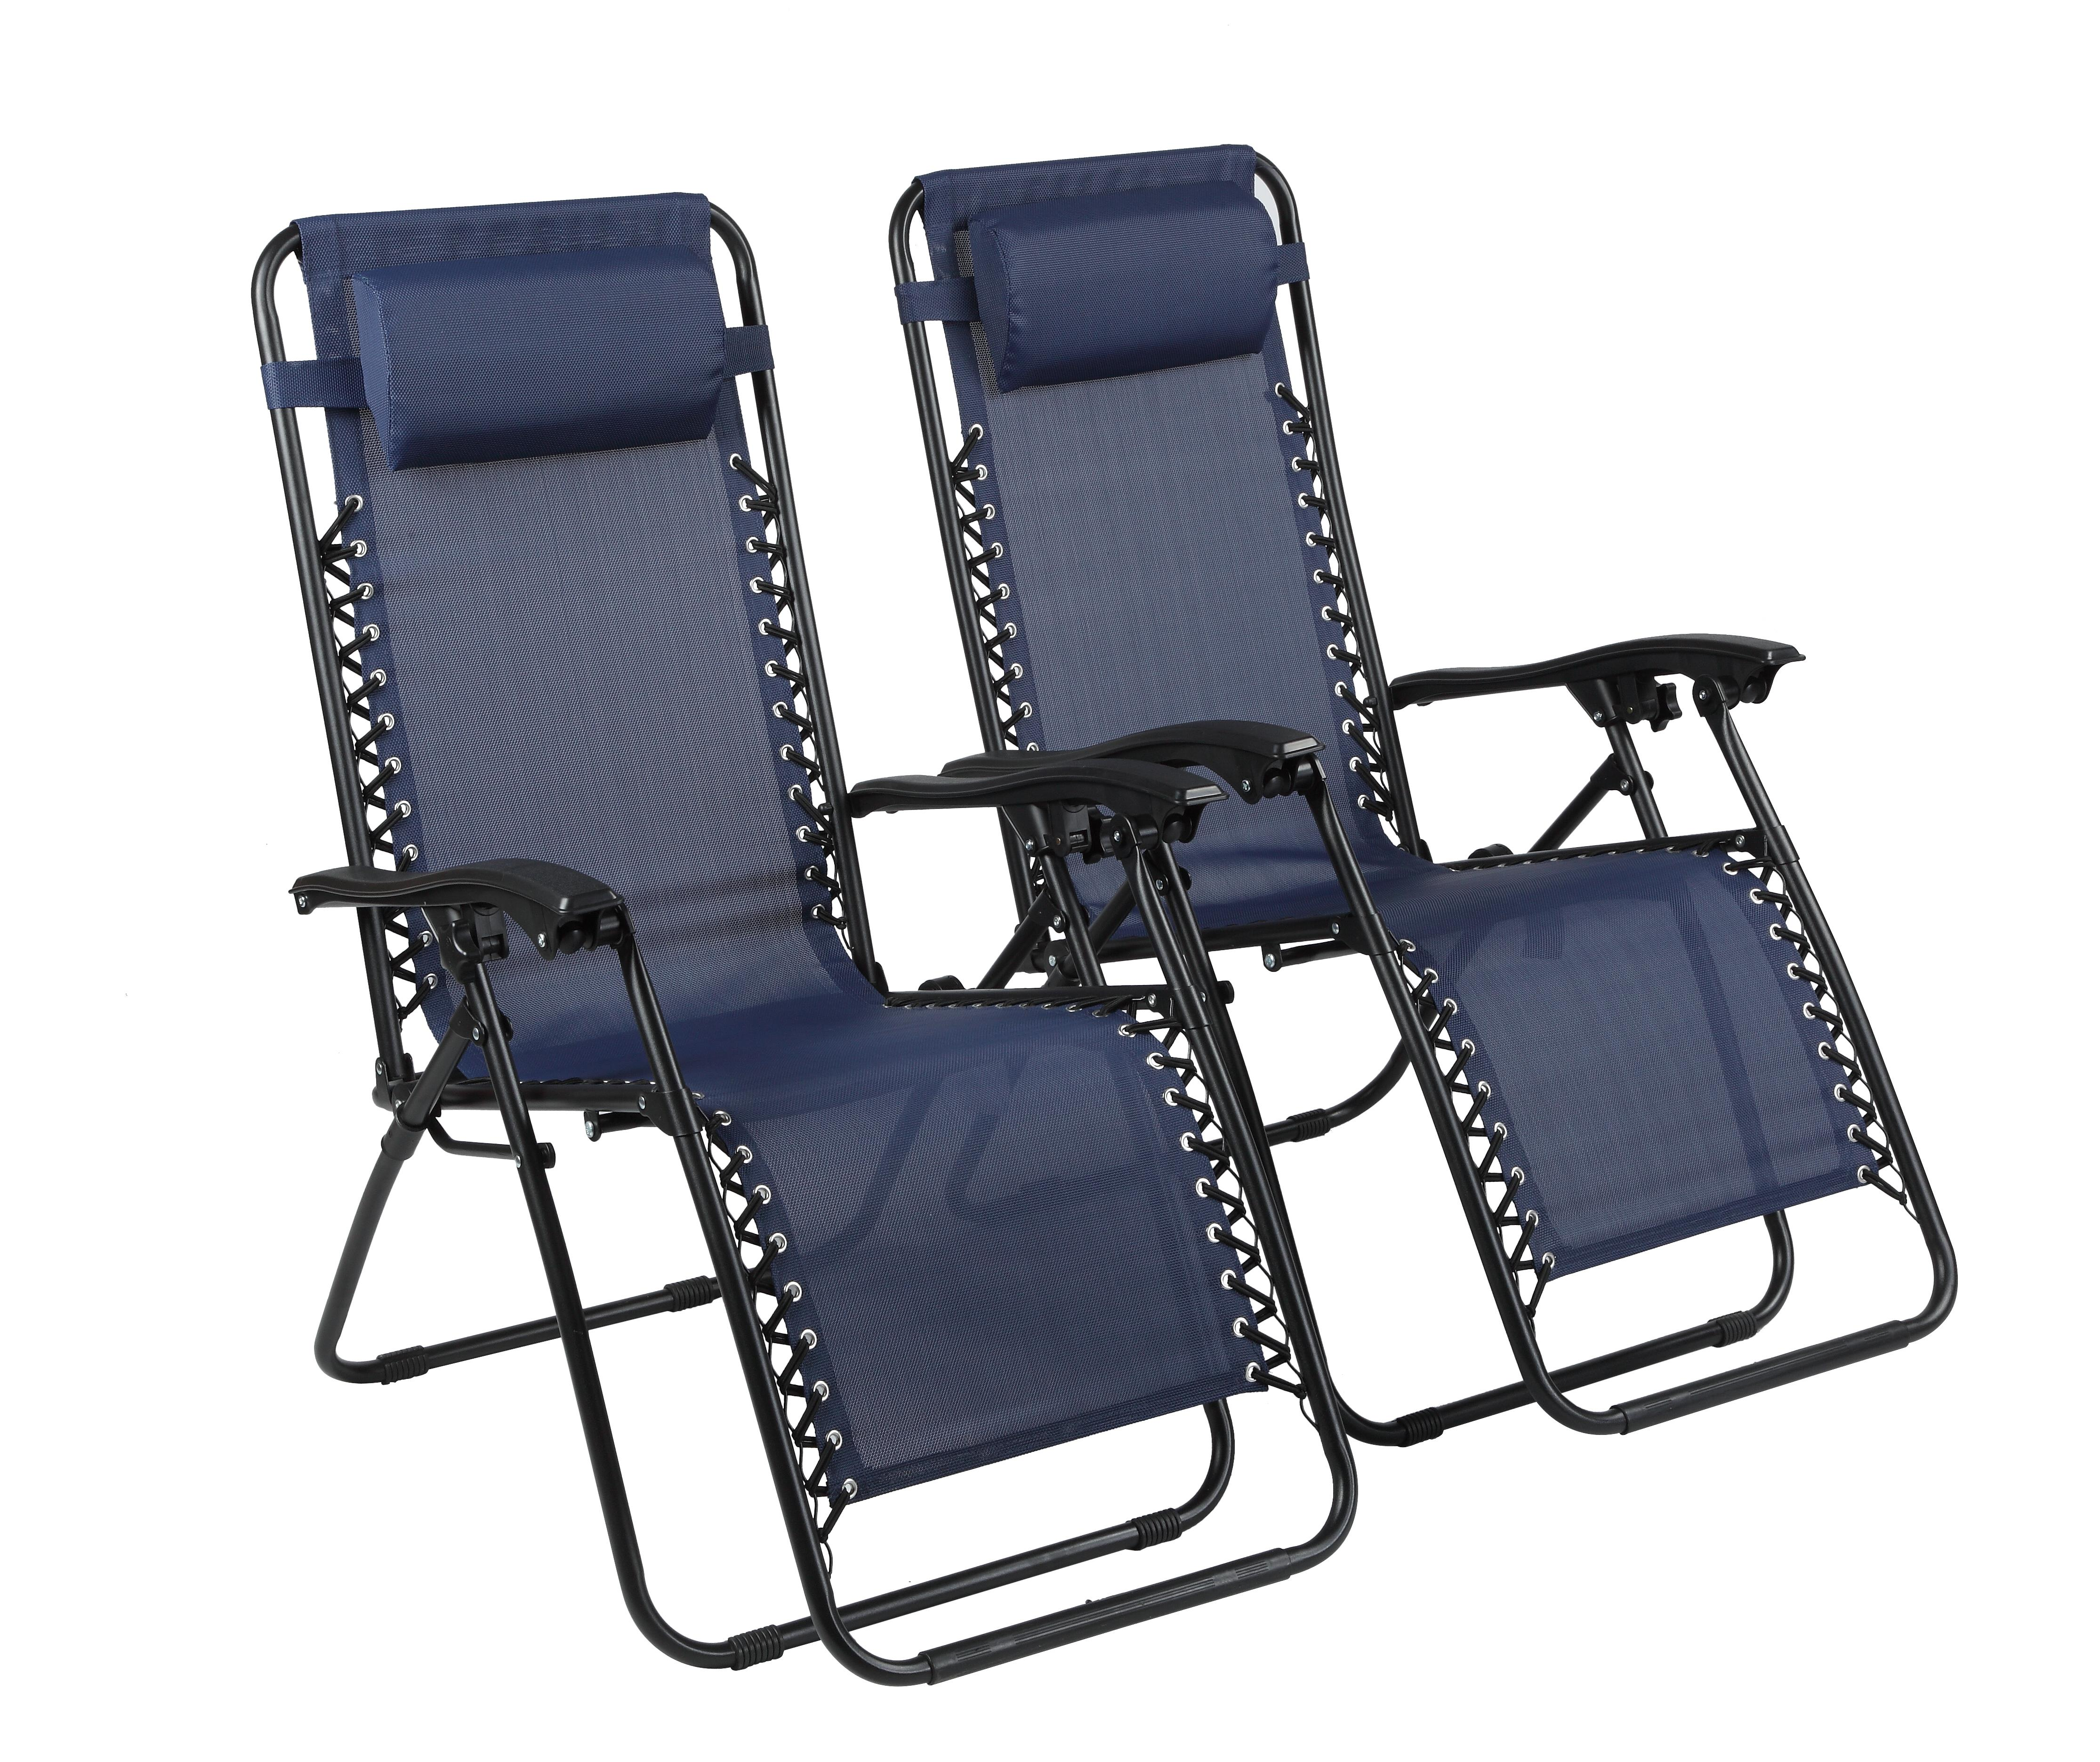 Chairs Comfortable Naomi Home Zero Gravity Lounge Patio Outdoor Recliner Chairs Navy Set Of 2